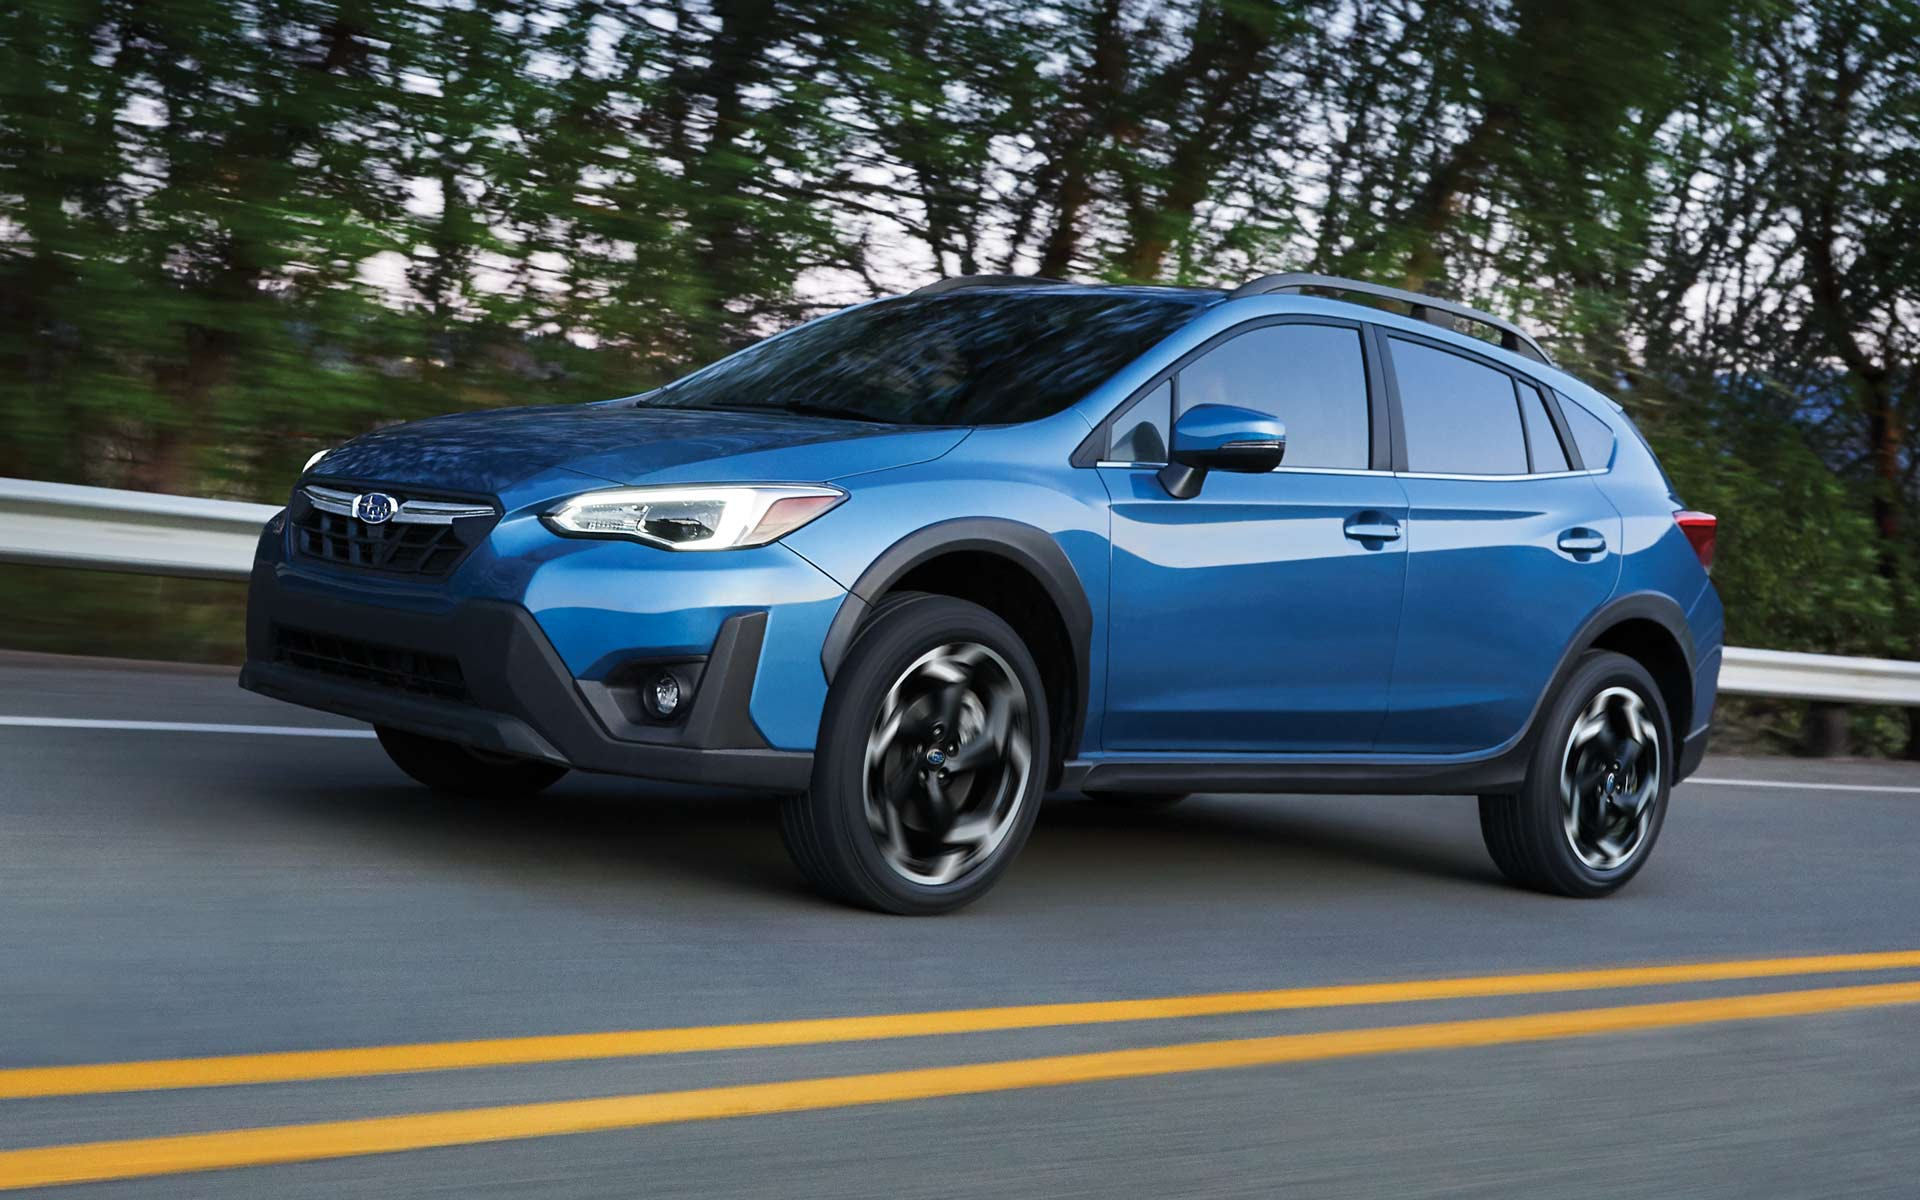 The New 2021 Subaru Crosstrek Is Both Safe and Adventure-Ready in Bay City, MI